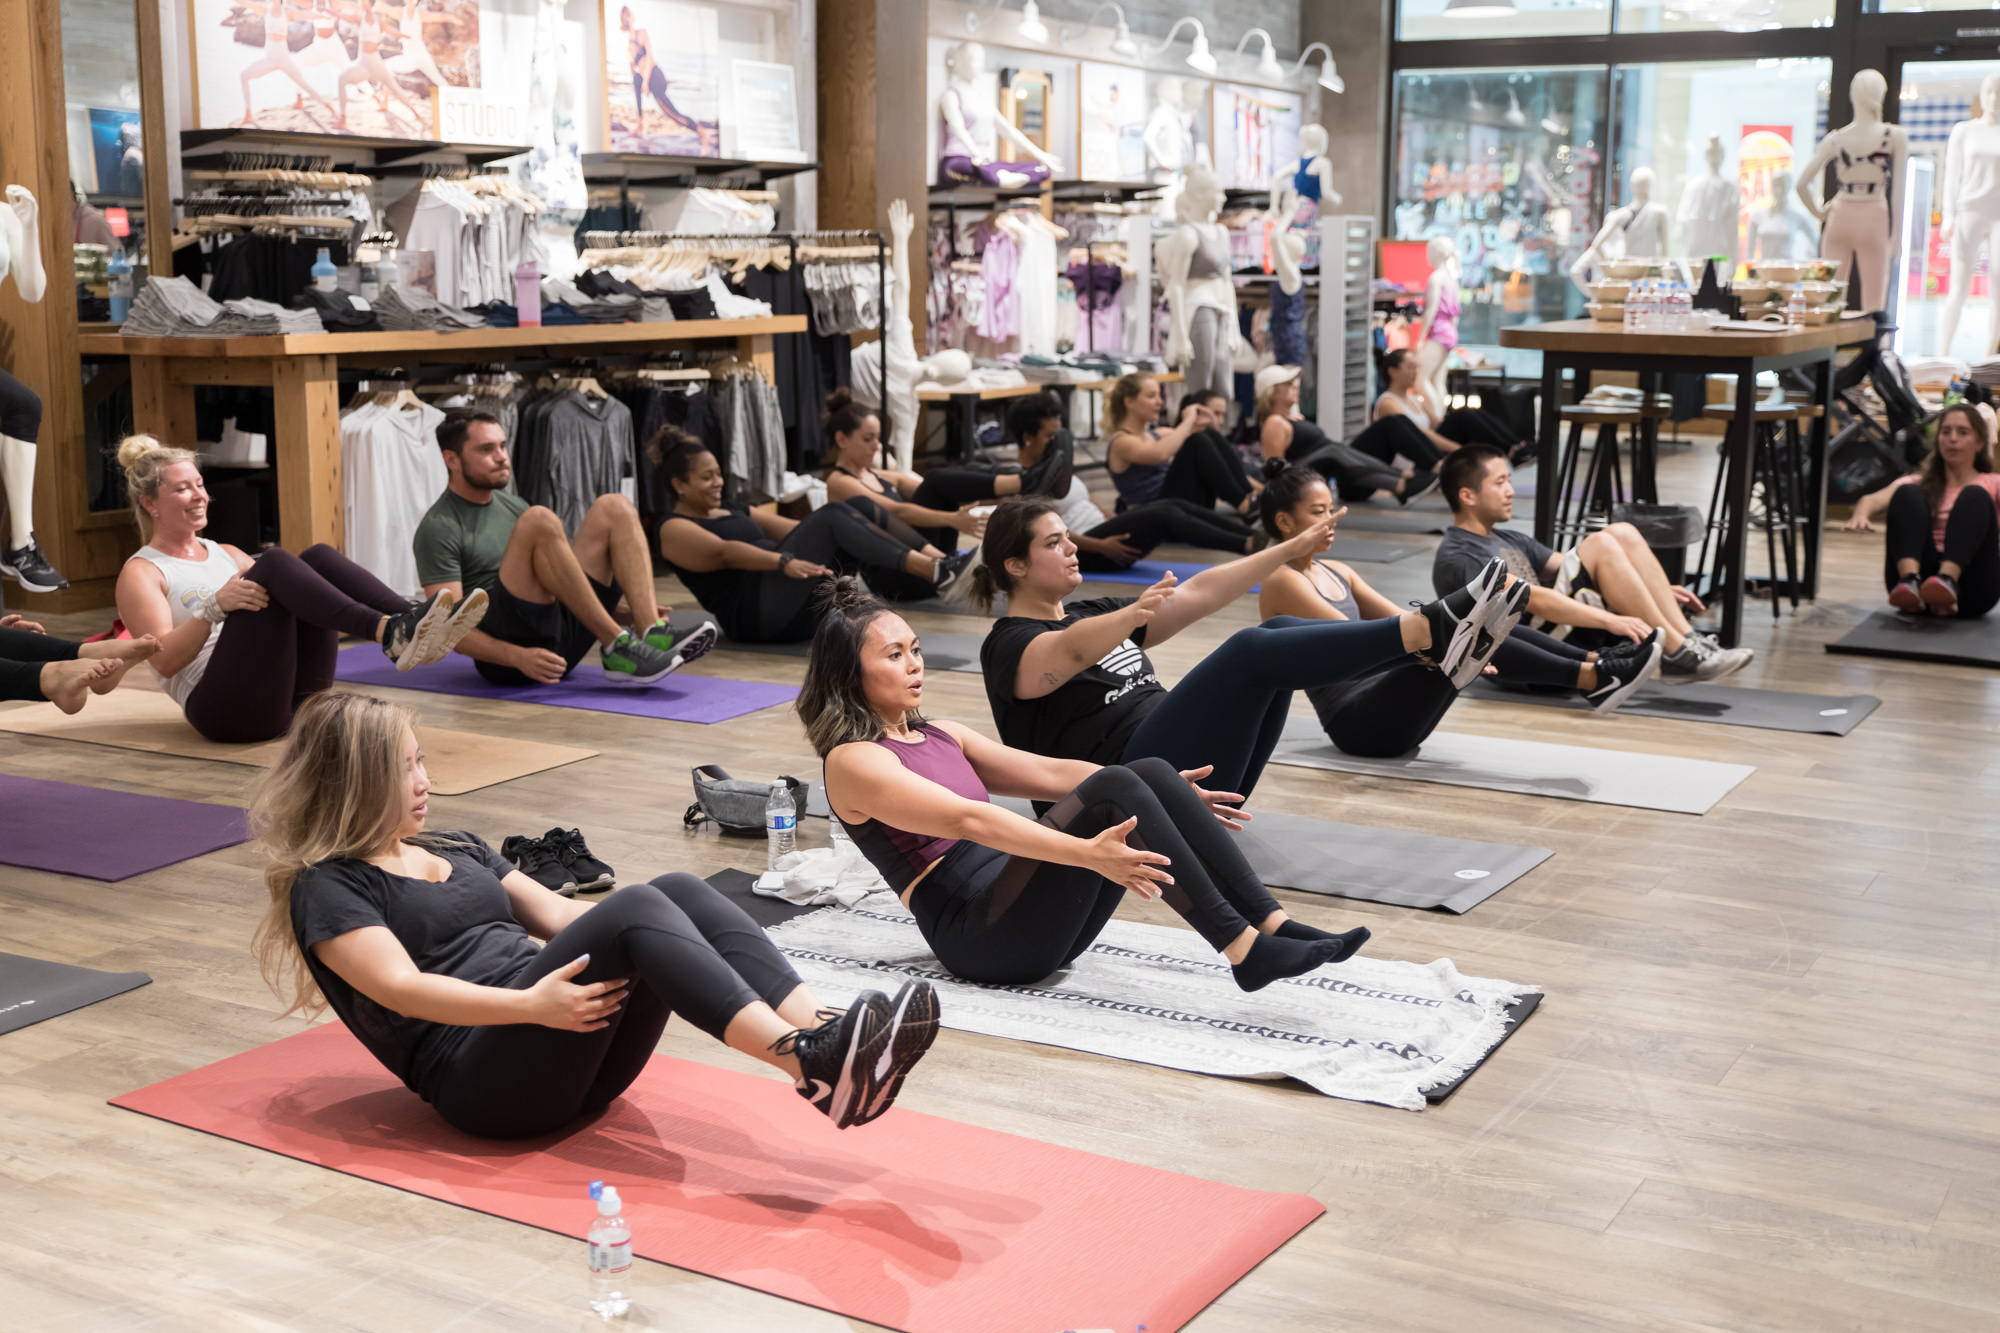 group-performing-situps-ab-exercises-group-fitness-pegactive-workshop-athleta-san-jose.jpg